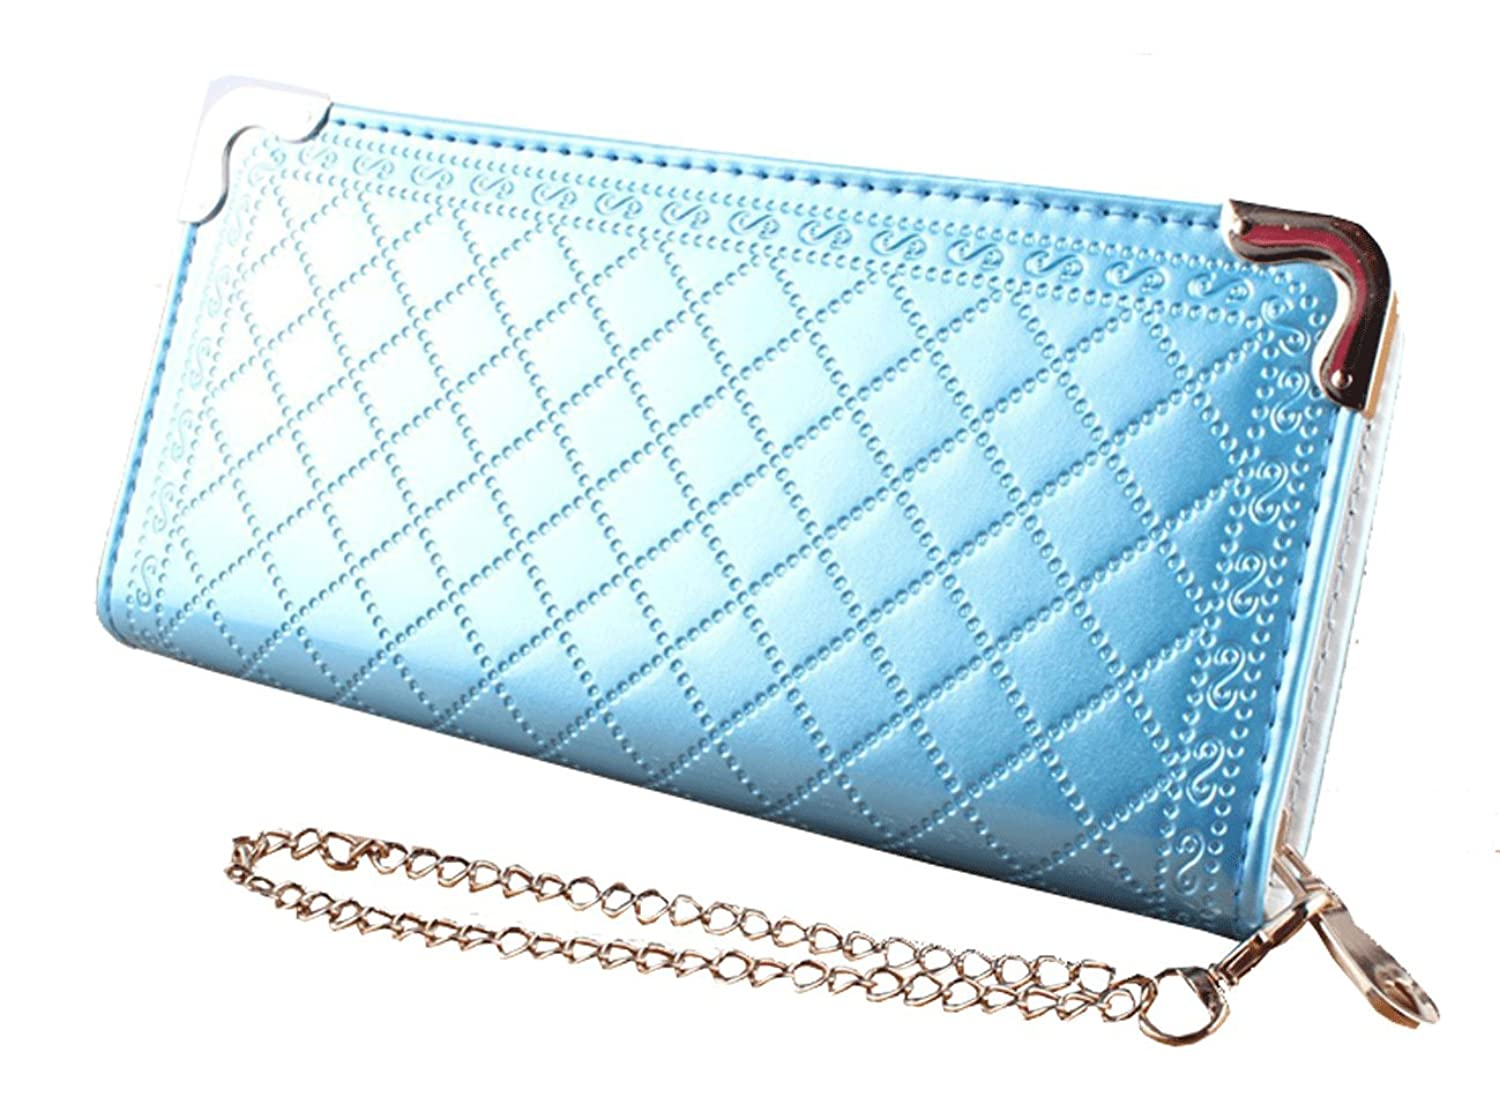 Unomatch Women's Novelty Clutch Wallet with Metal Chain